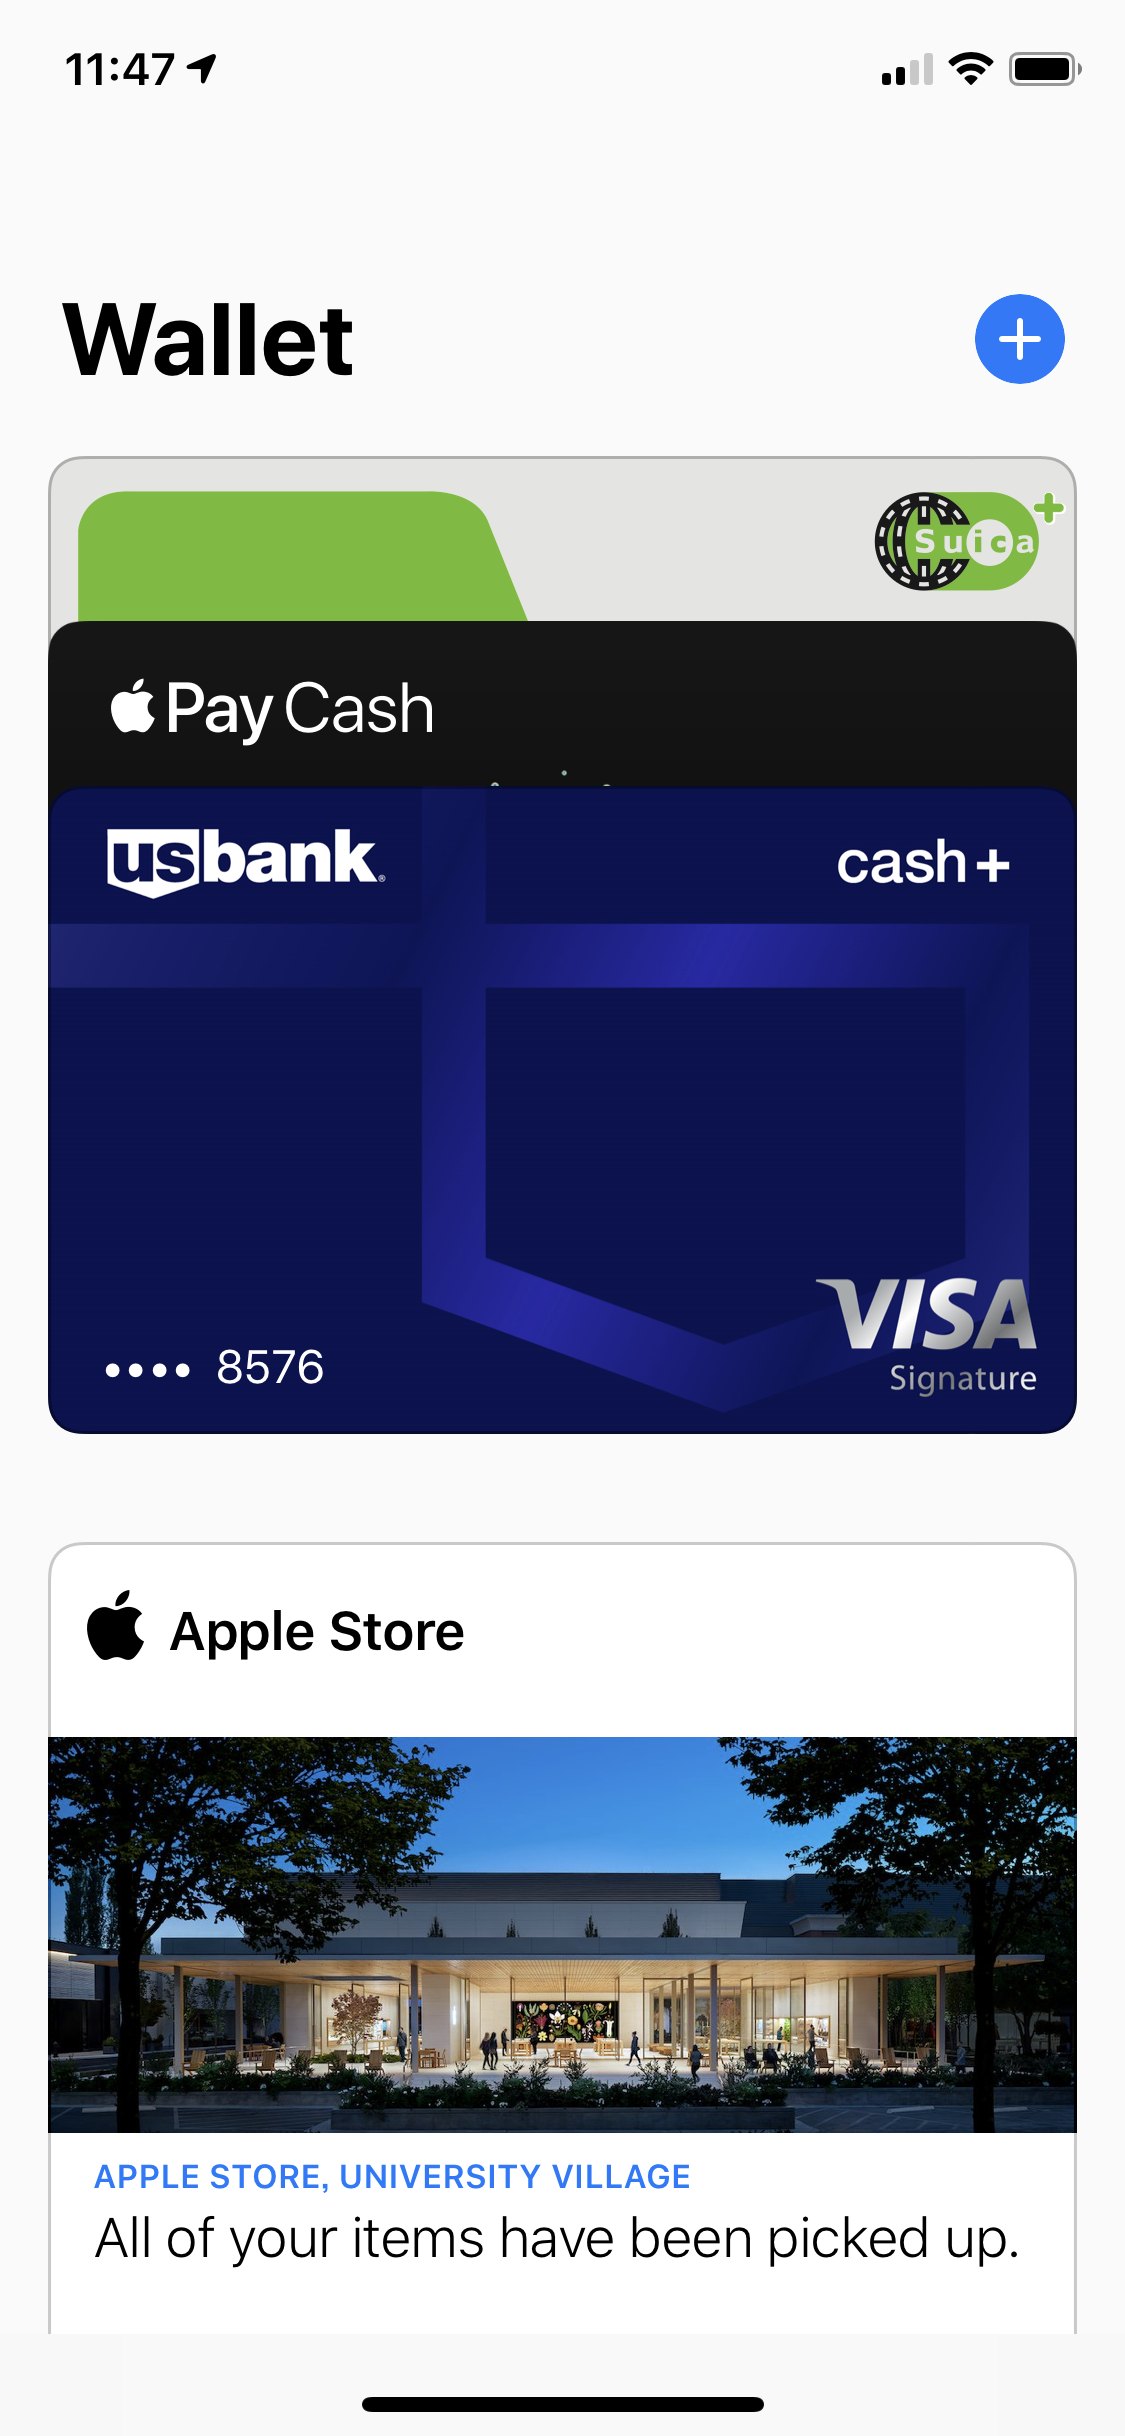 iOS Wallet is the simplest with the homepage taking the users right to their cards with Passes at the bottom